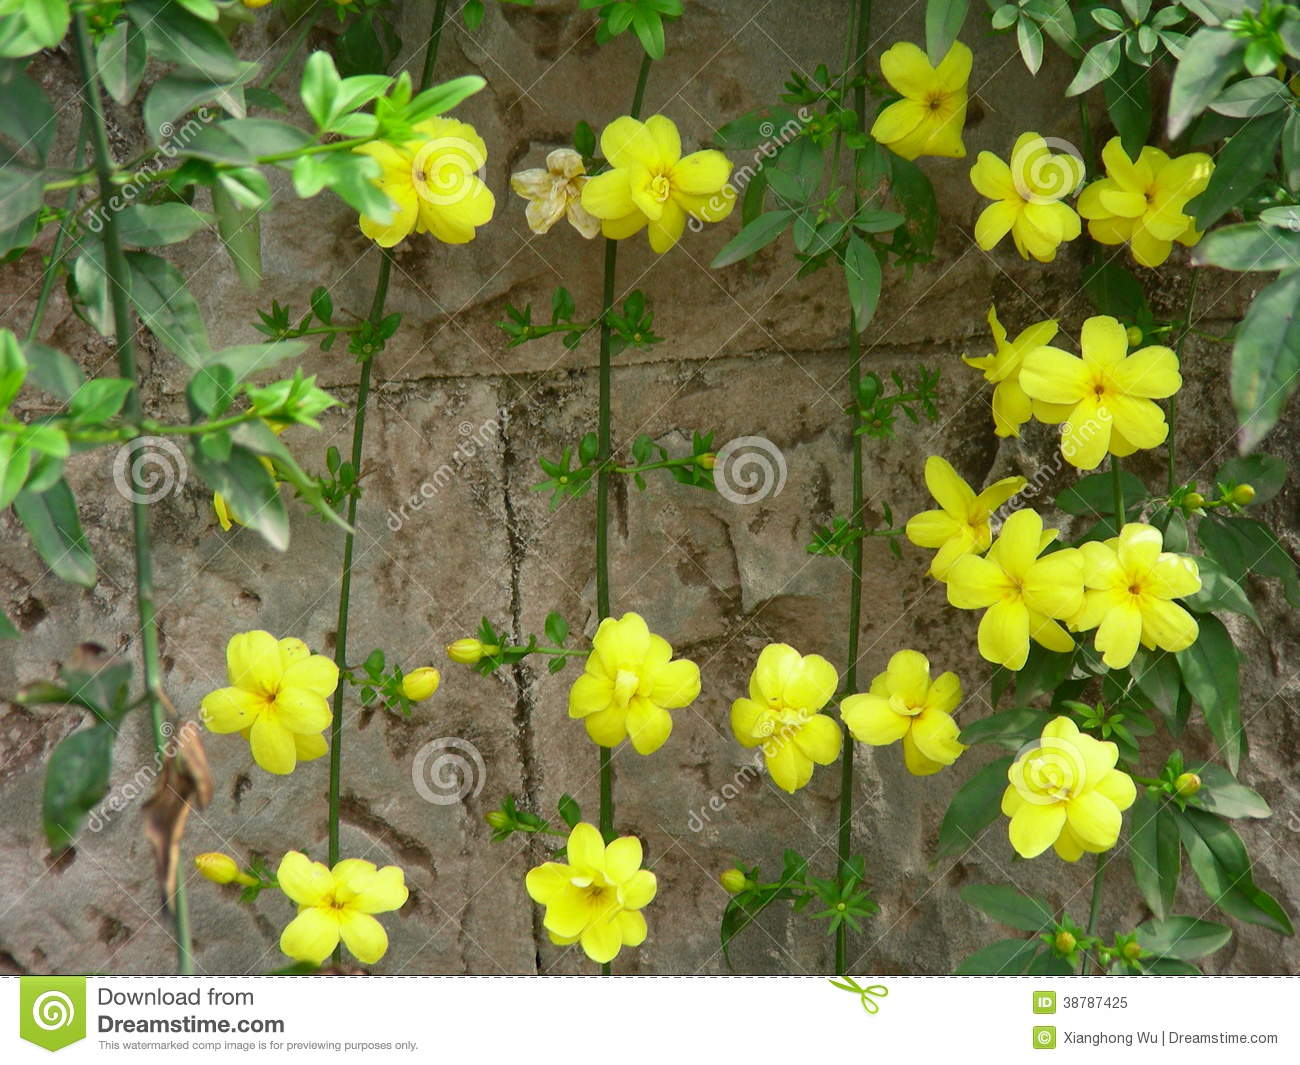 Winter jasmine with yellow flowers stock image image of life download winter jasmine with yellow flowers stock image image of life closeup 38787425 izmirmasajfo